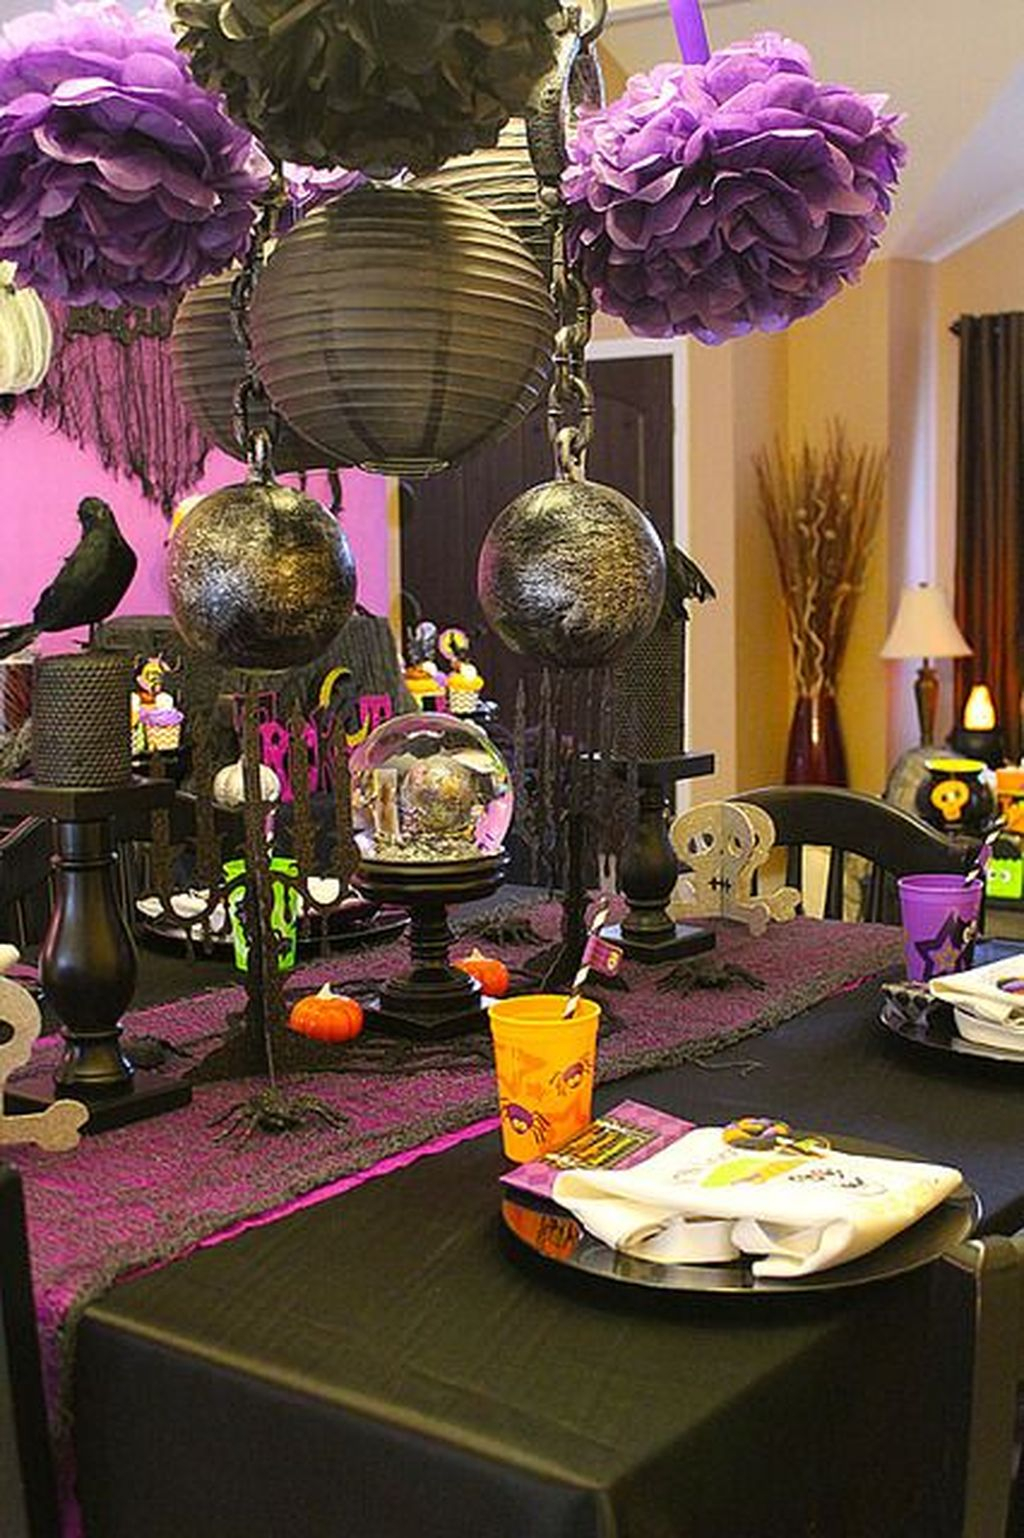 Creepy Decorations Ideas For A Frightening Halloween Party 01